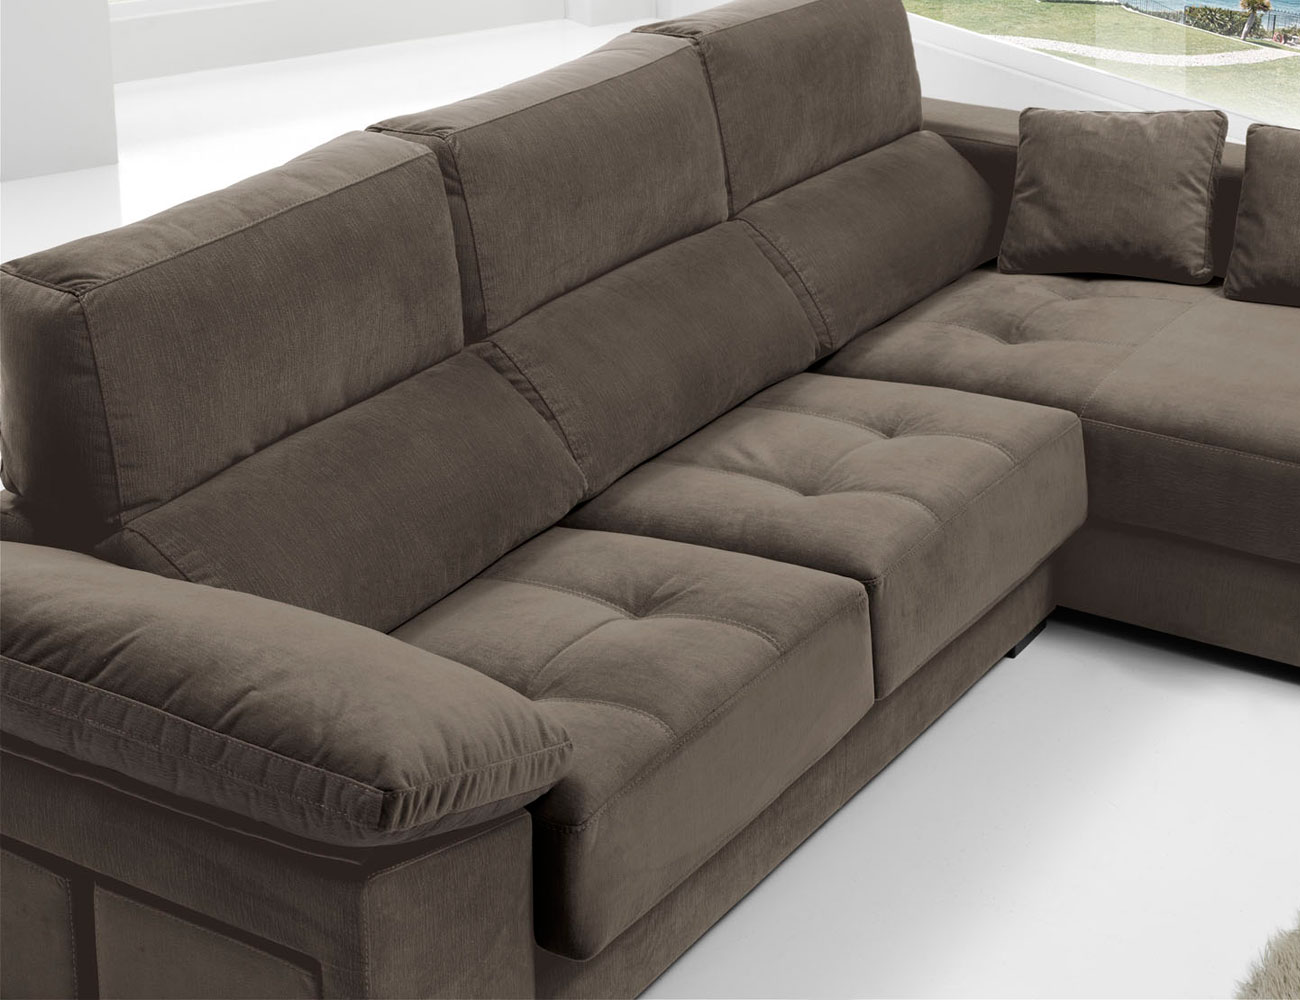 Sofa chaiselongue anti manchas bering pouf 217